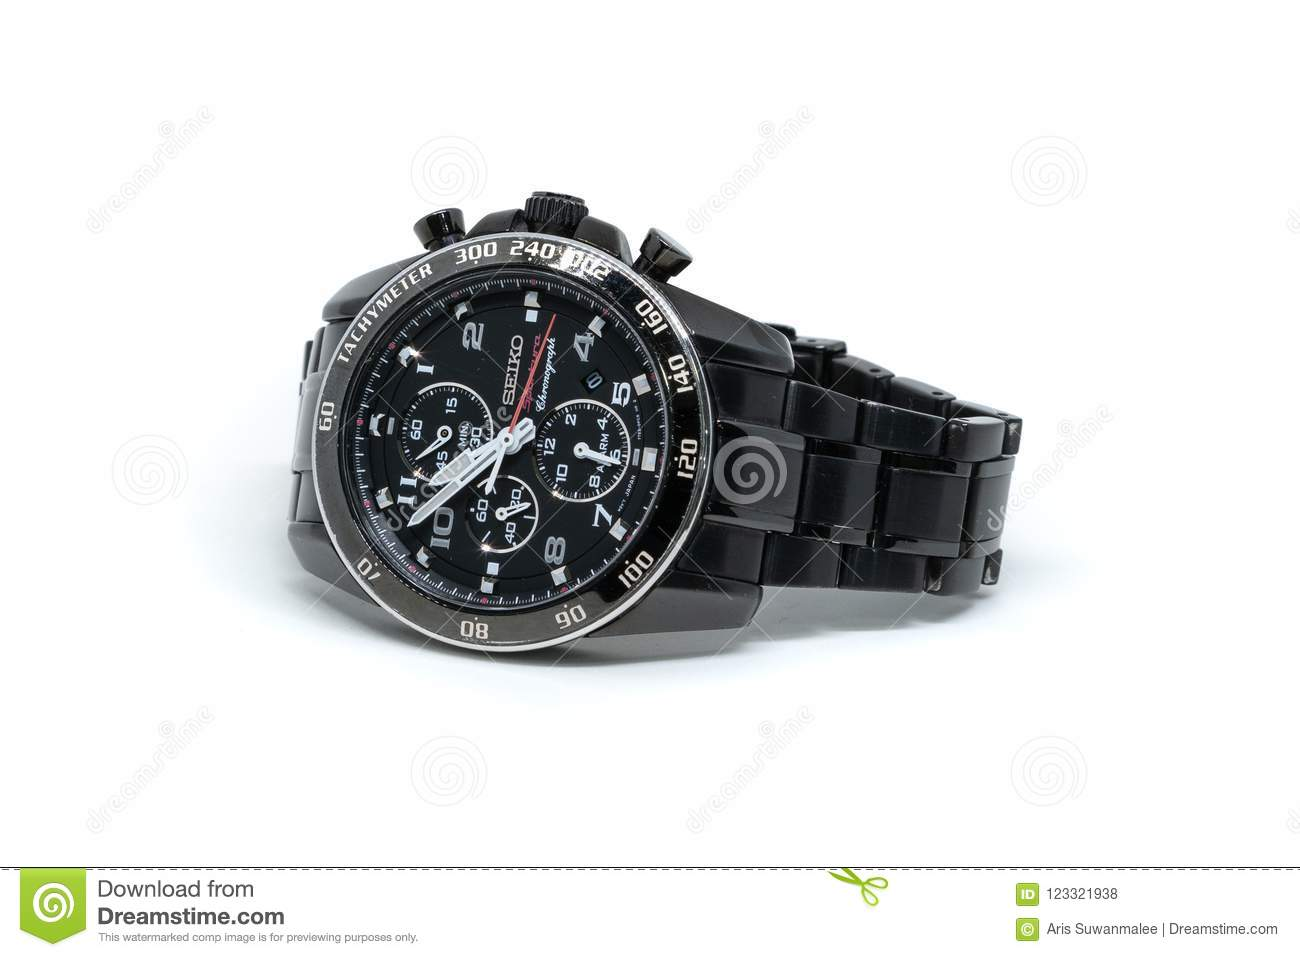 ` S Seiko Watch On White Background de los hombres negros